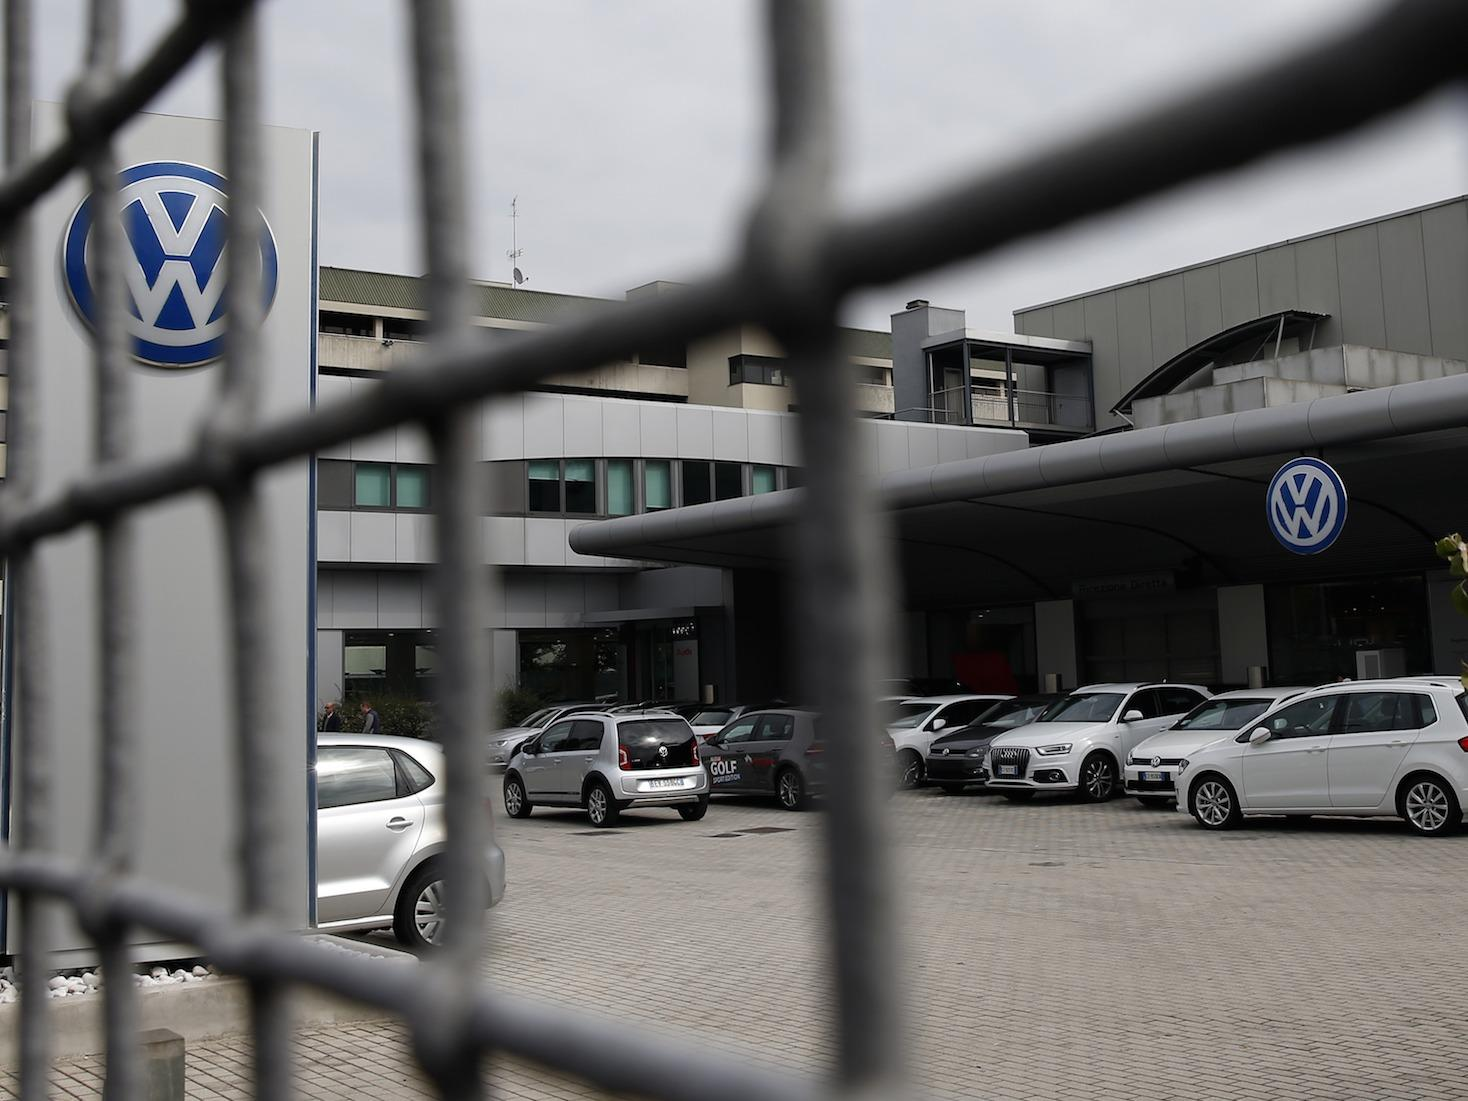 Volkswagen's troubles in the US could be deepening